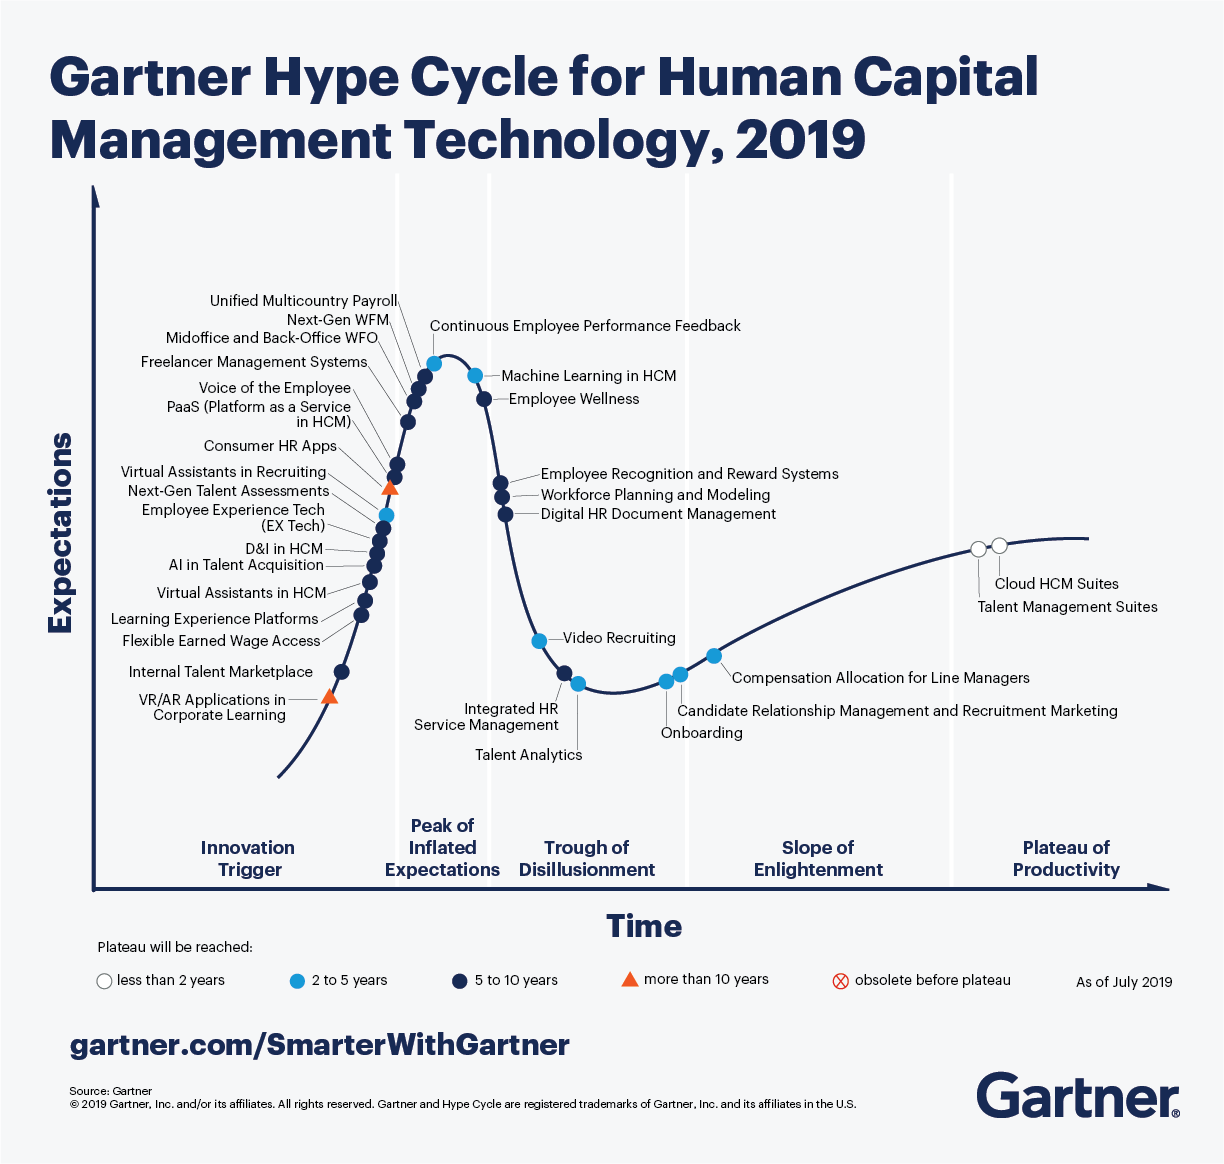 Gartner Hype Cycle for Human Capital Management Technology 2019